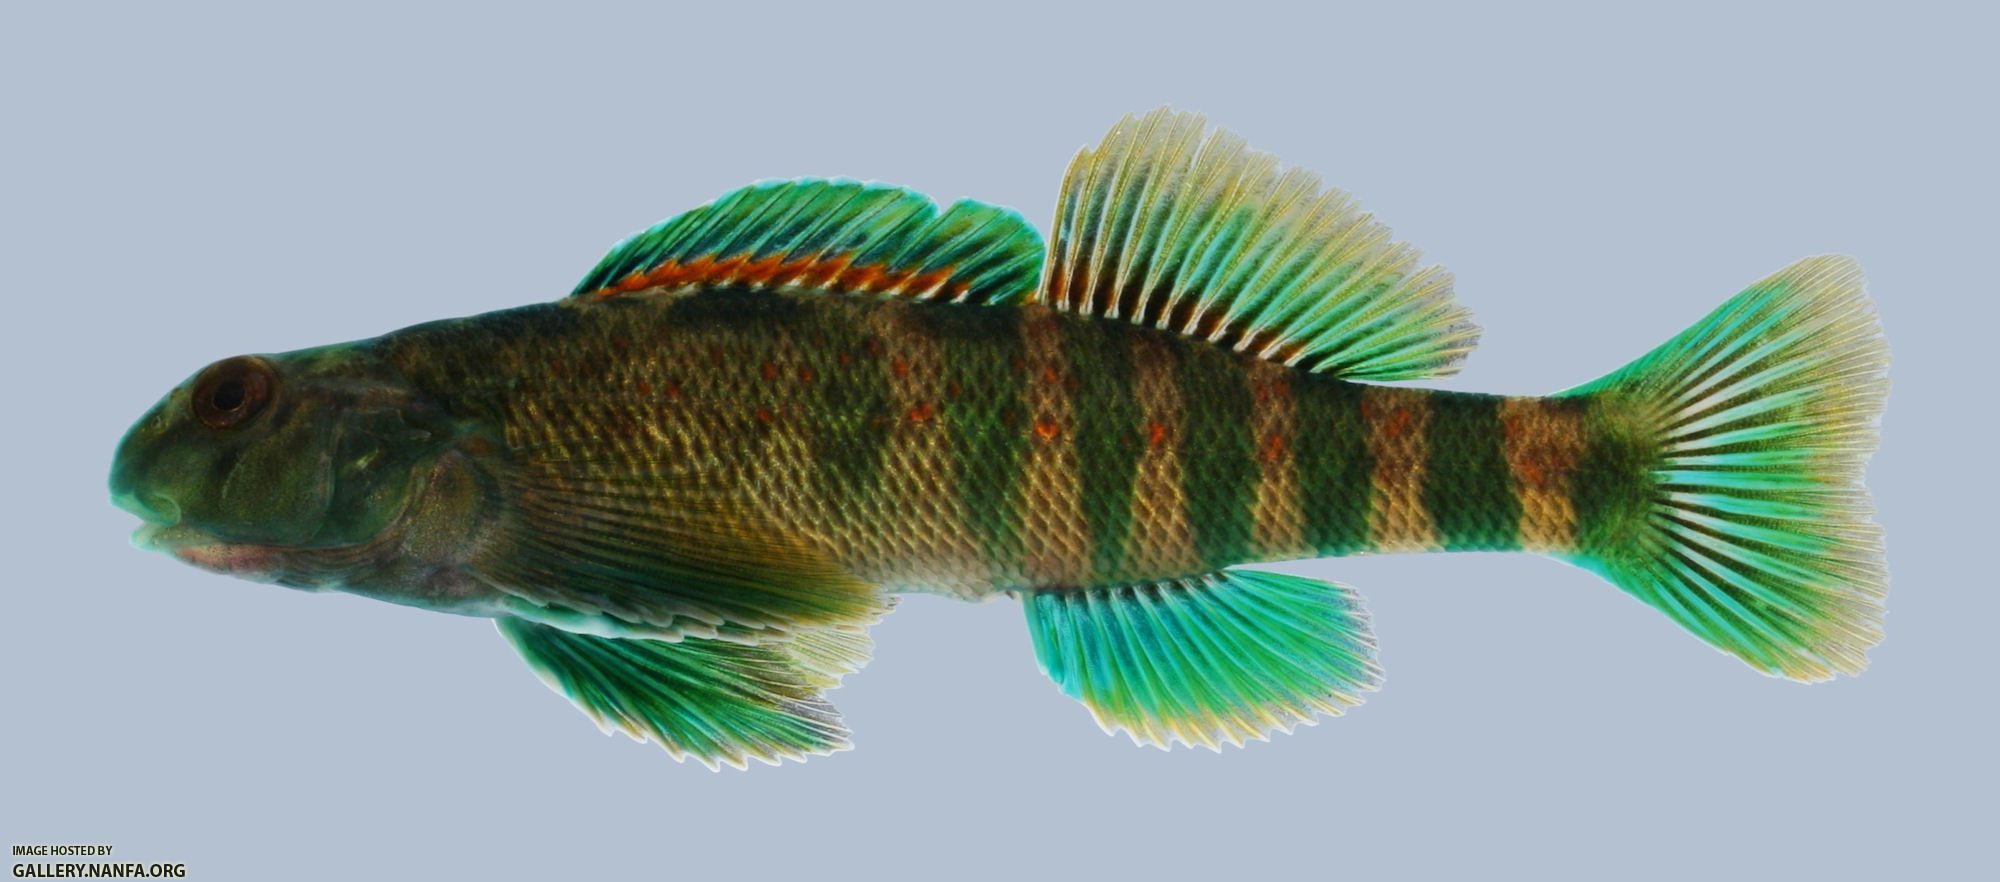 Etheostoma blennioides Greenside Darter Male 2000